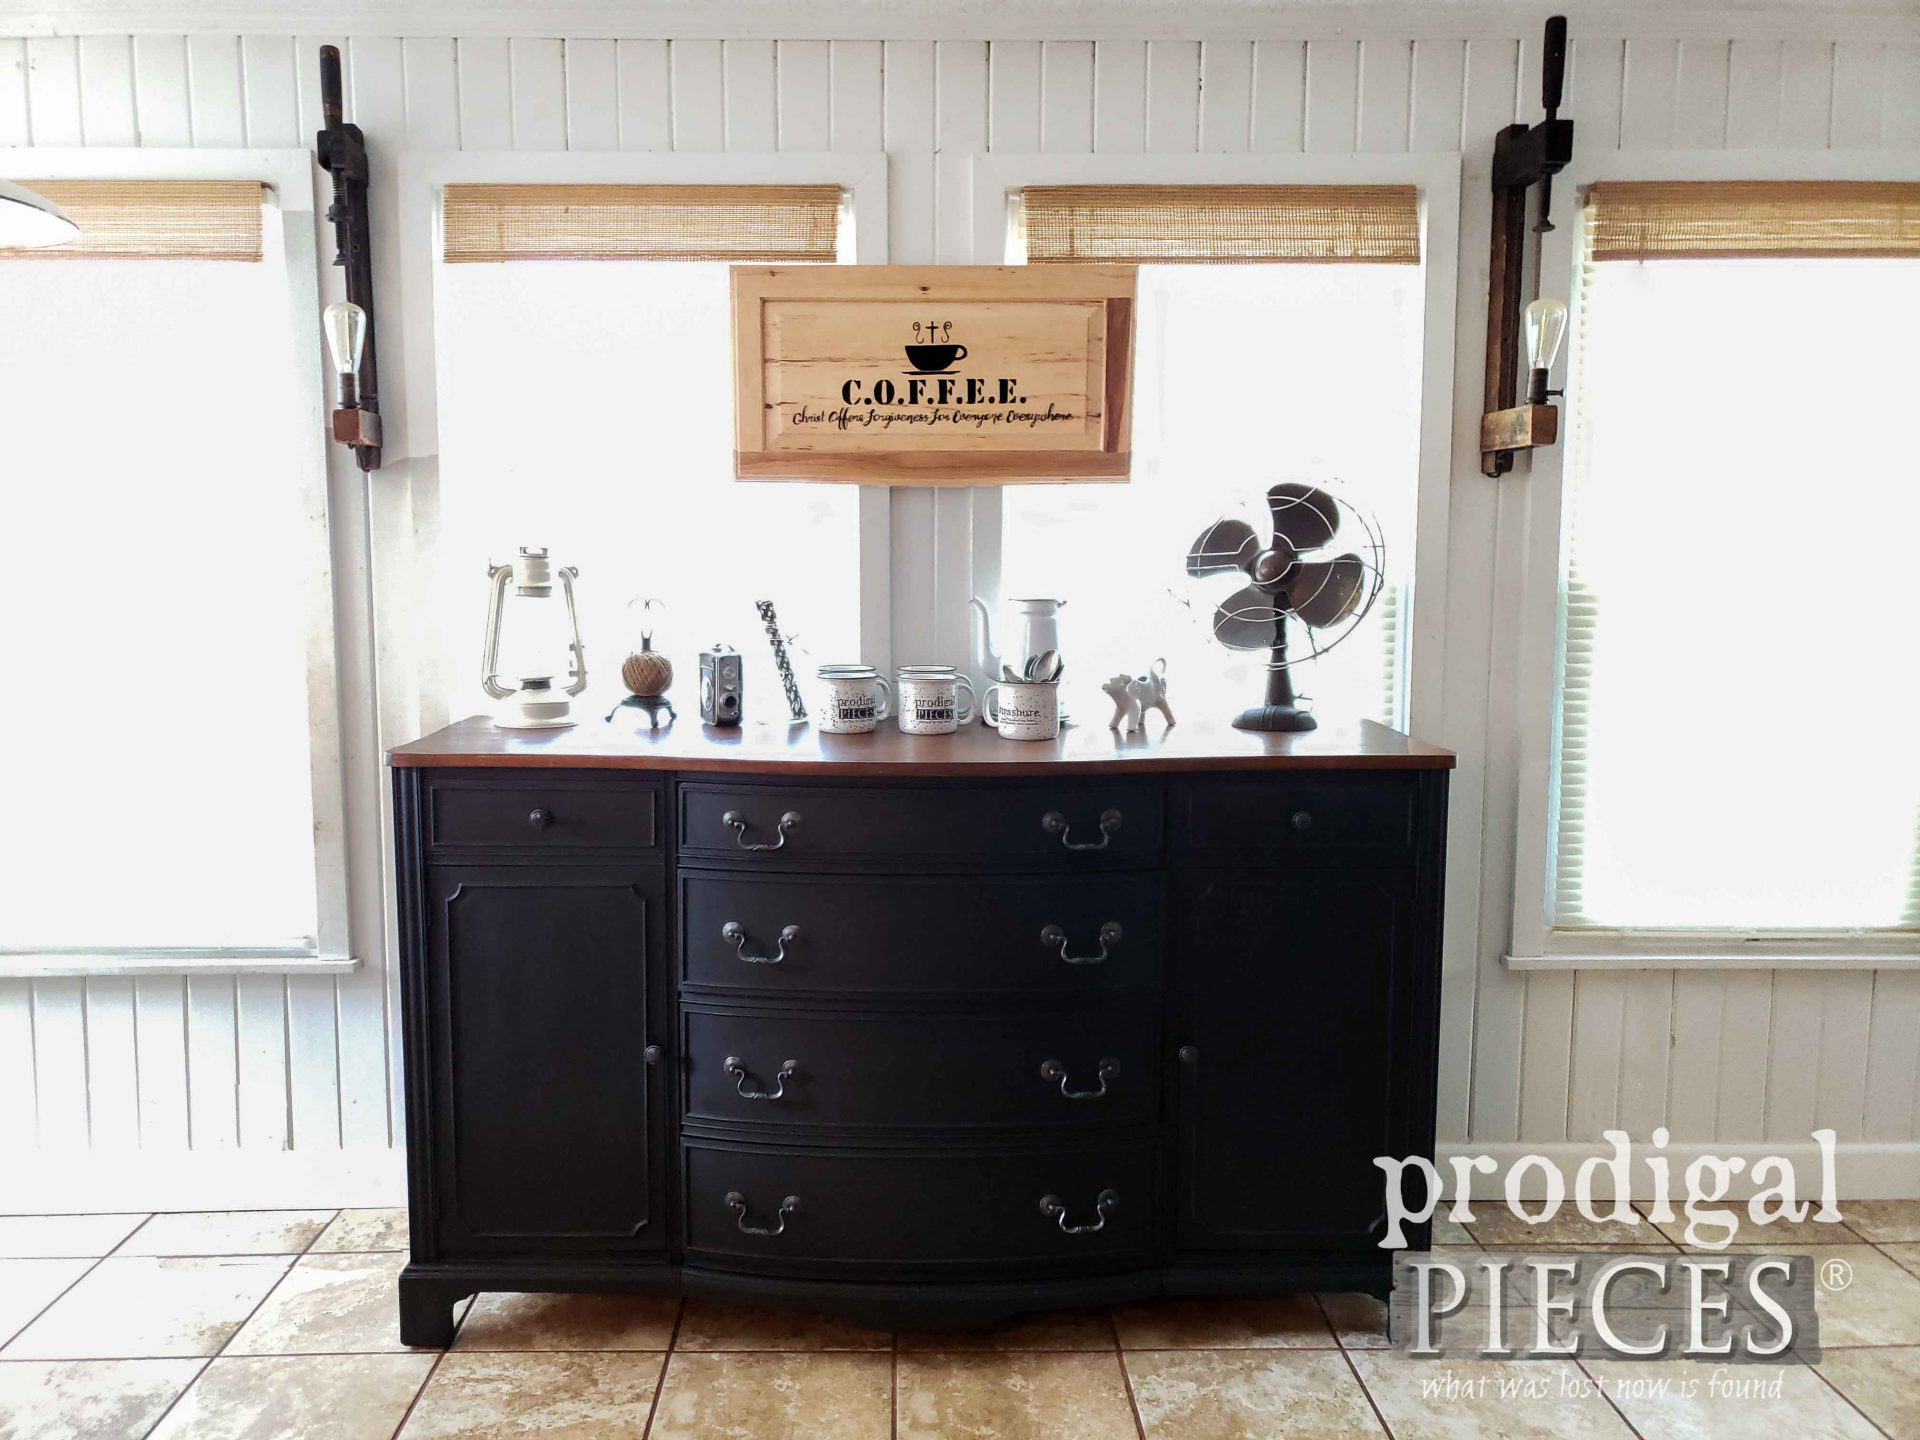 Vintage Buffet Refinished in a Soft Black for a Farmhouse Industrial Coffee Bar by Larissa of Prodigal Pieces | prodigalpieces.com #prodigalpieces #diy #furniture #vintage #home #farmhouse #homedecor #coffeebar